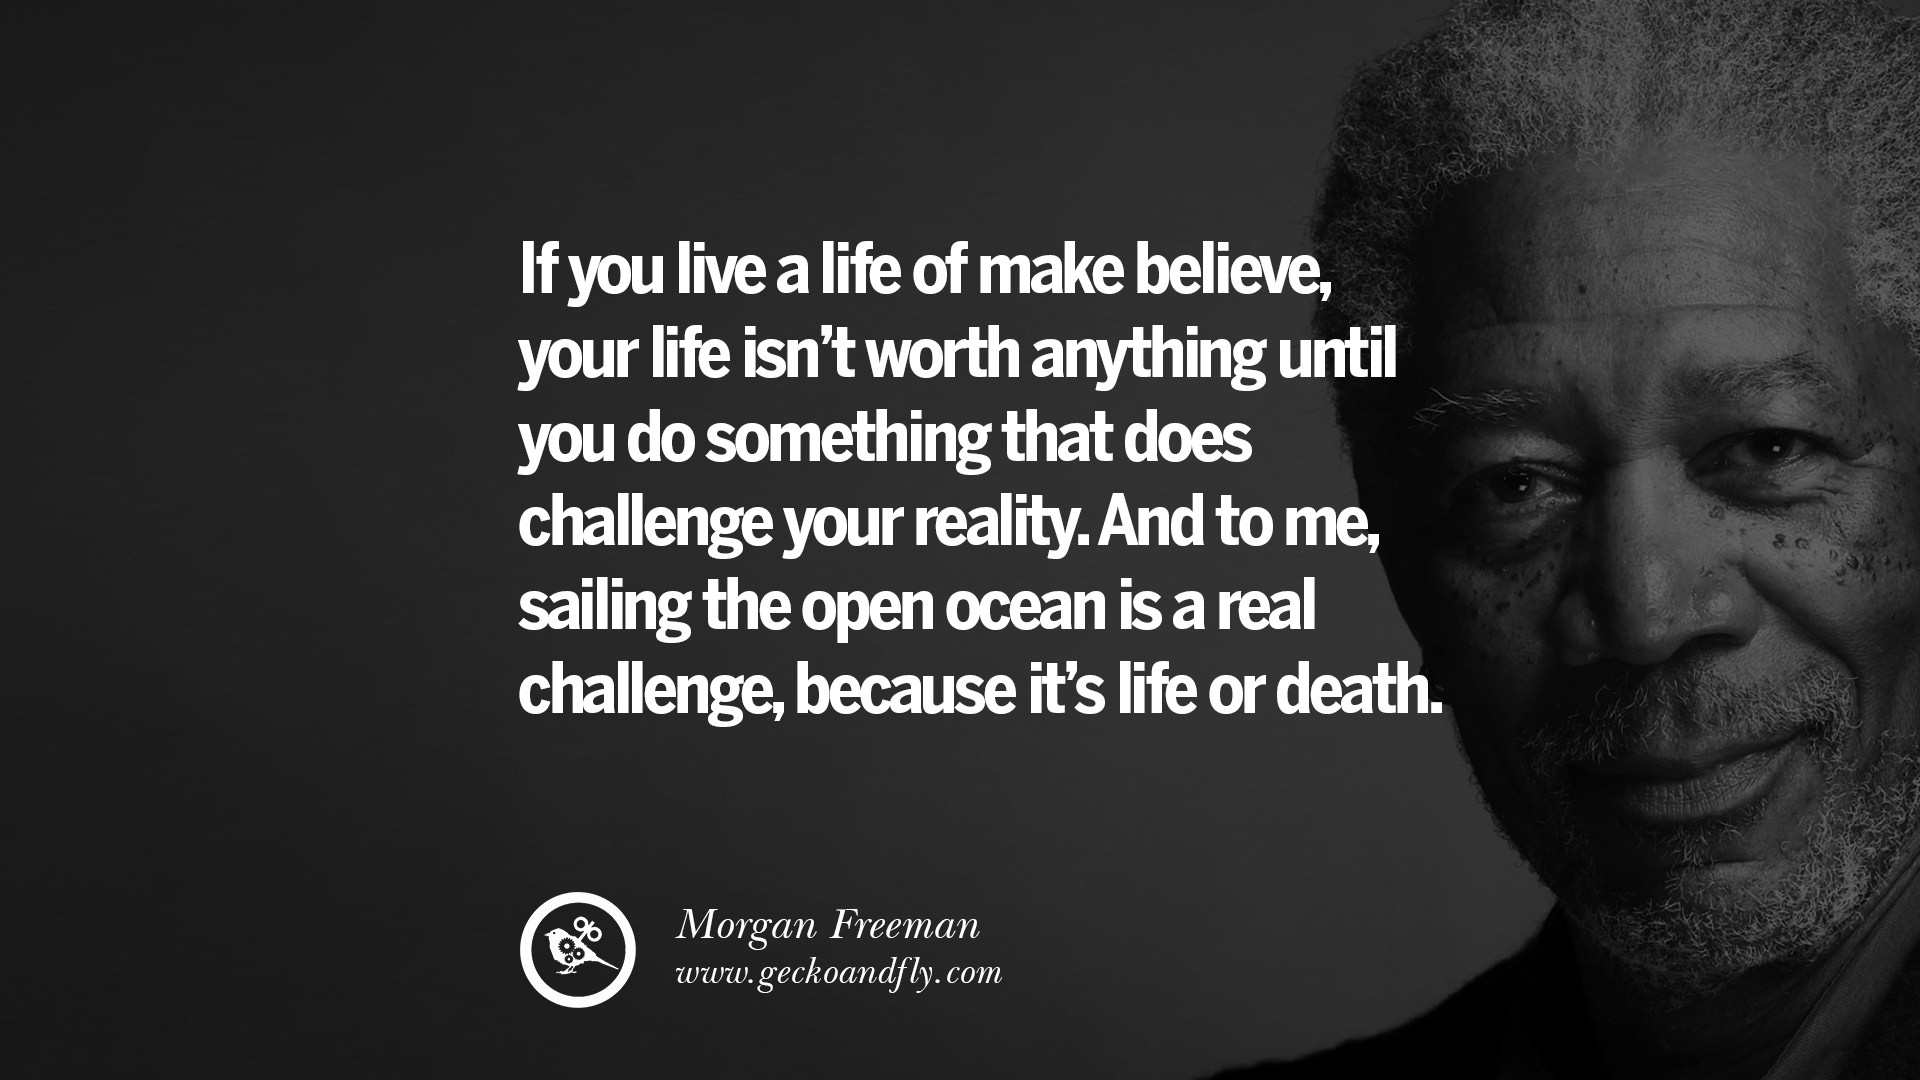 Life Death Quotes Gorgeous 10 Morgan Freeman Quotes On Life Death Success And Struggle